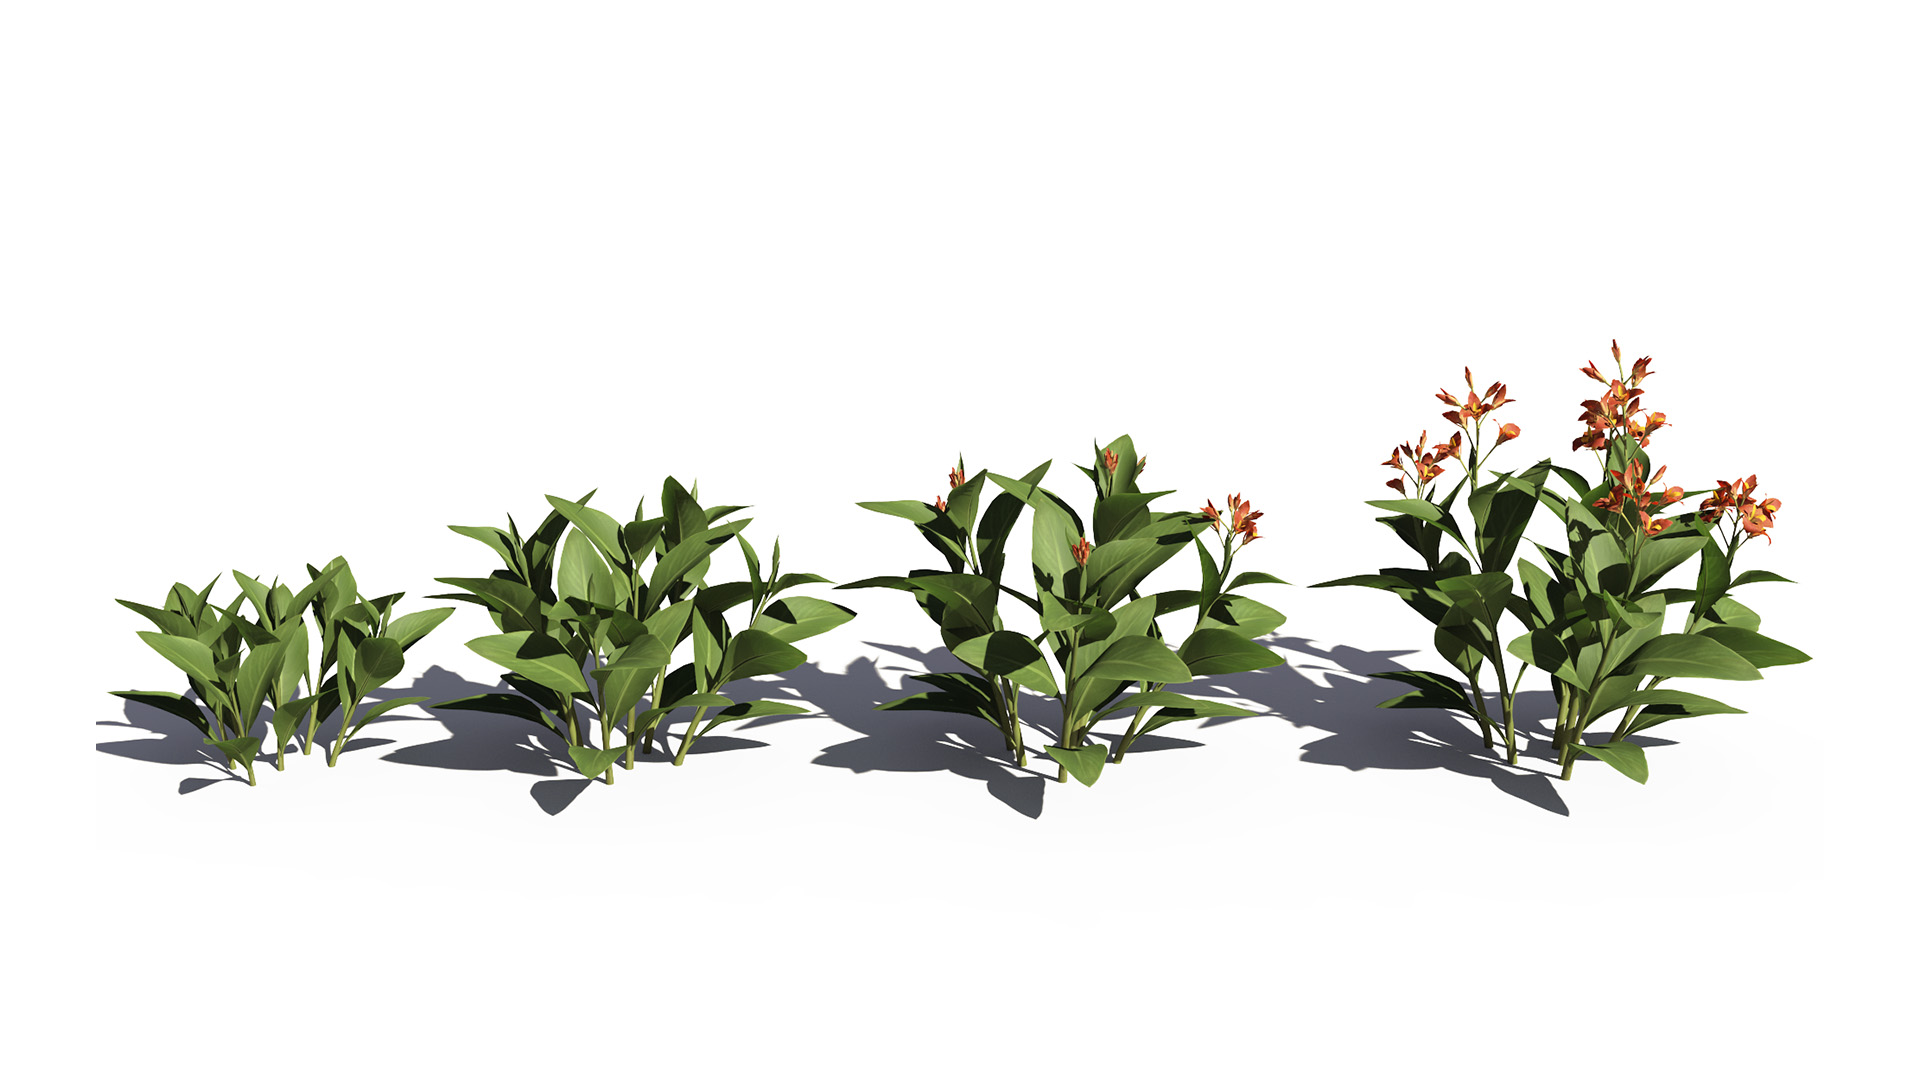 3D model of the Canna lily Canna x generalis orange maturity variations